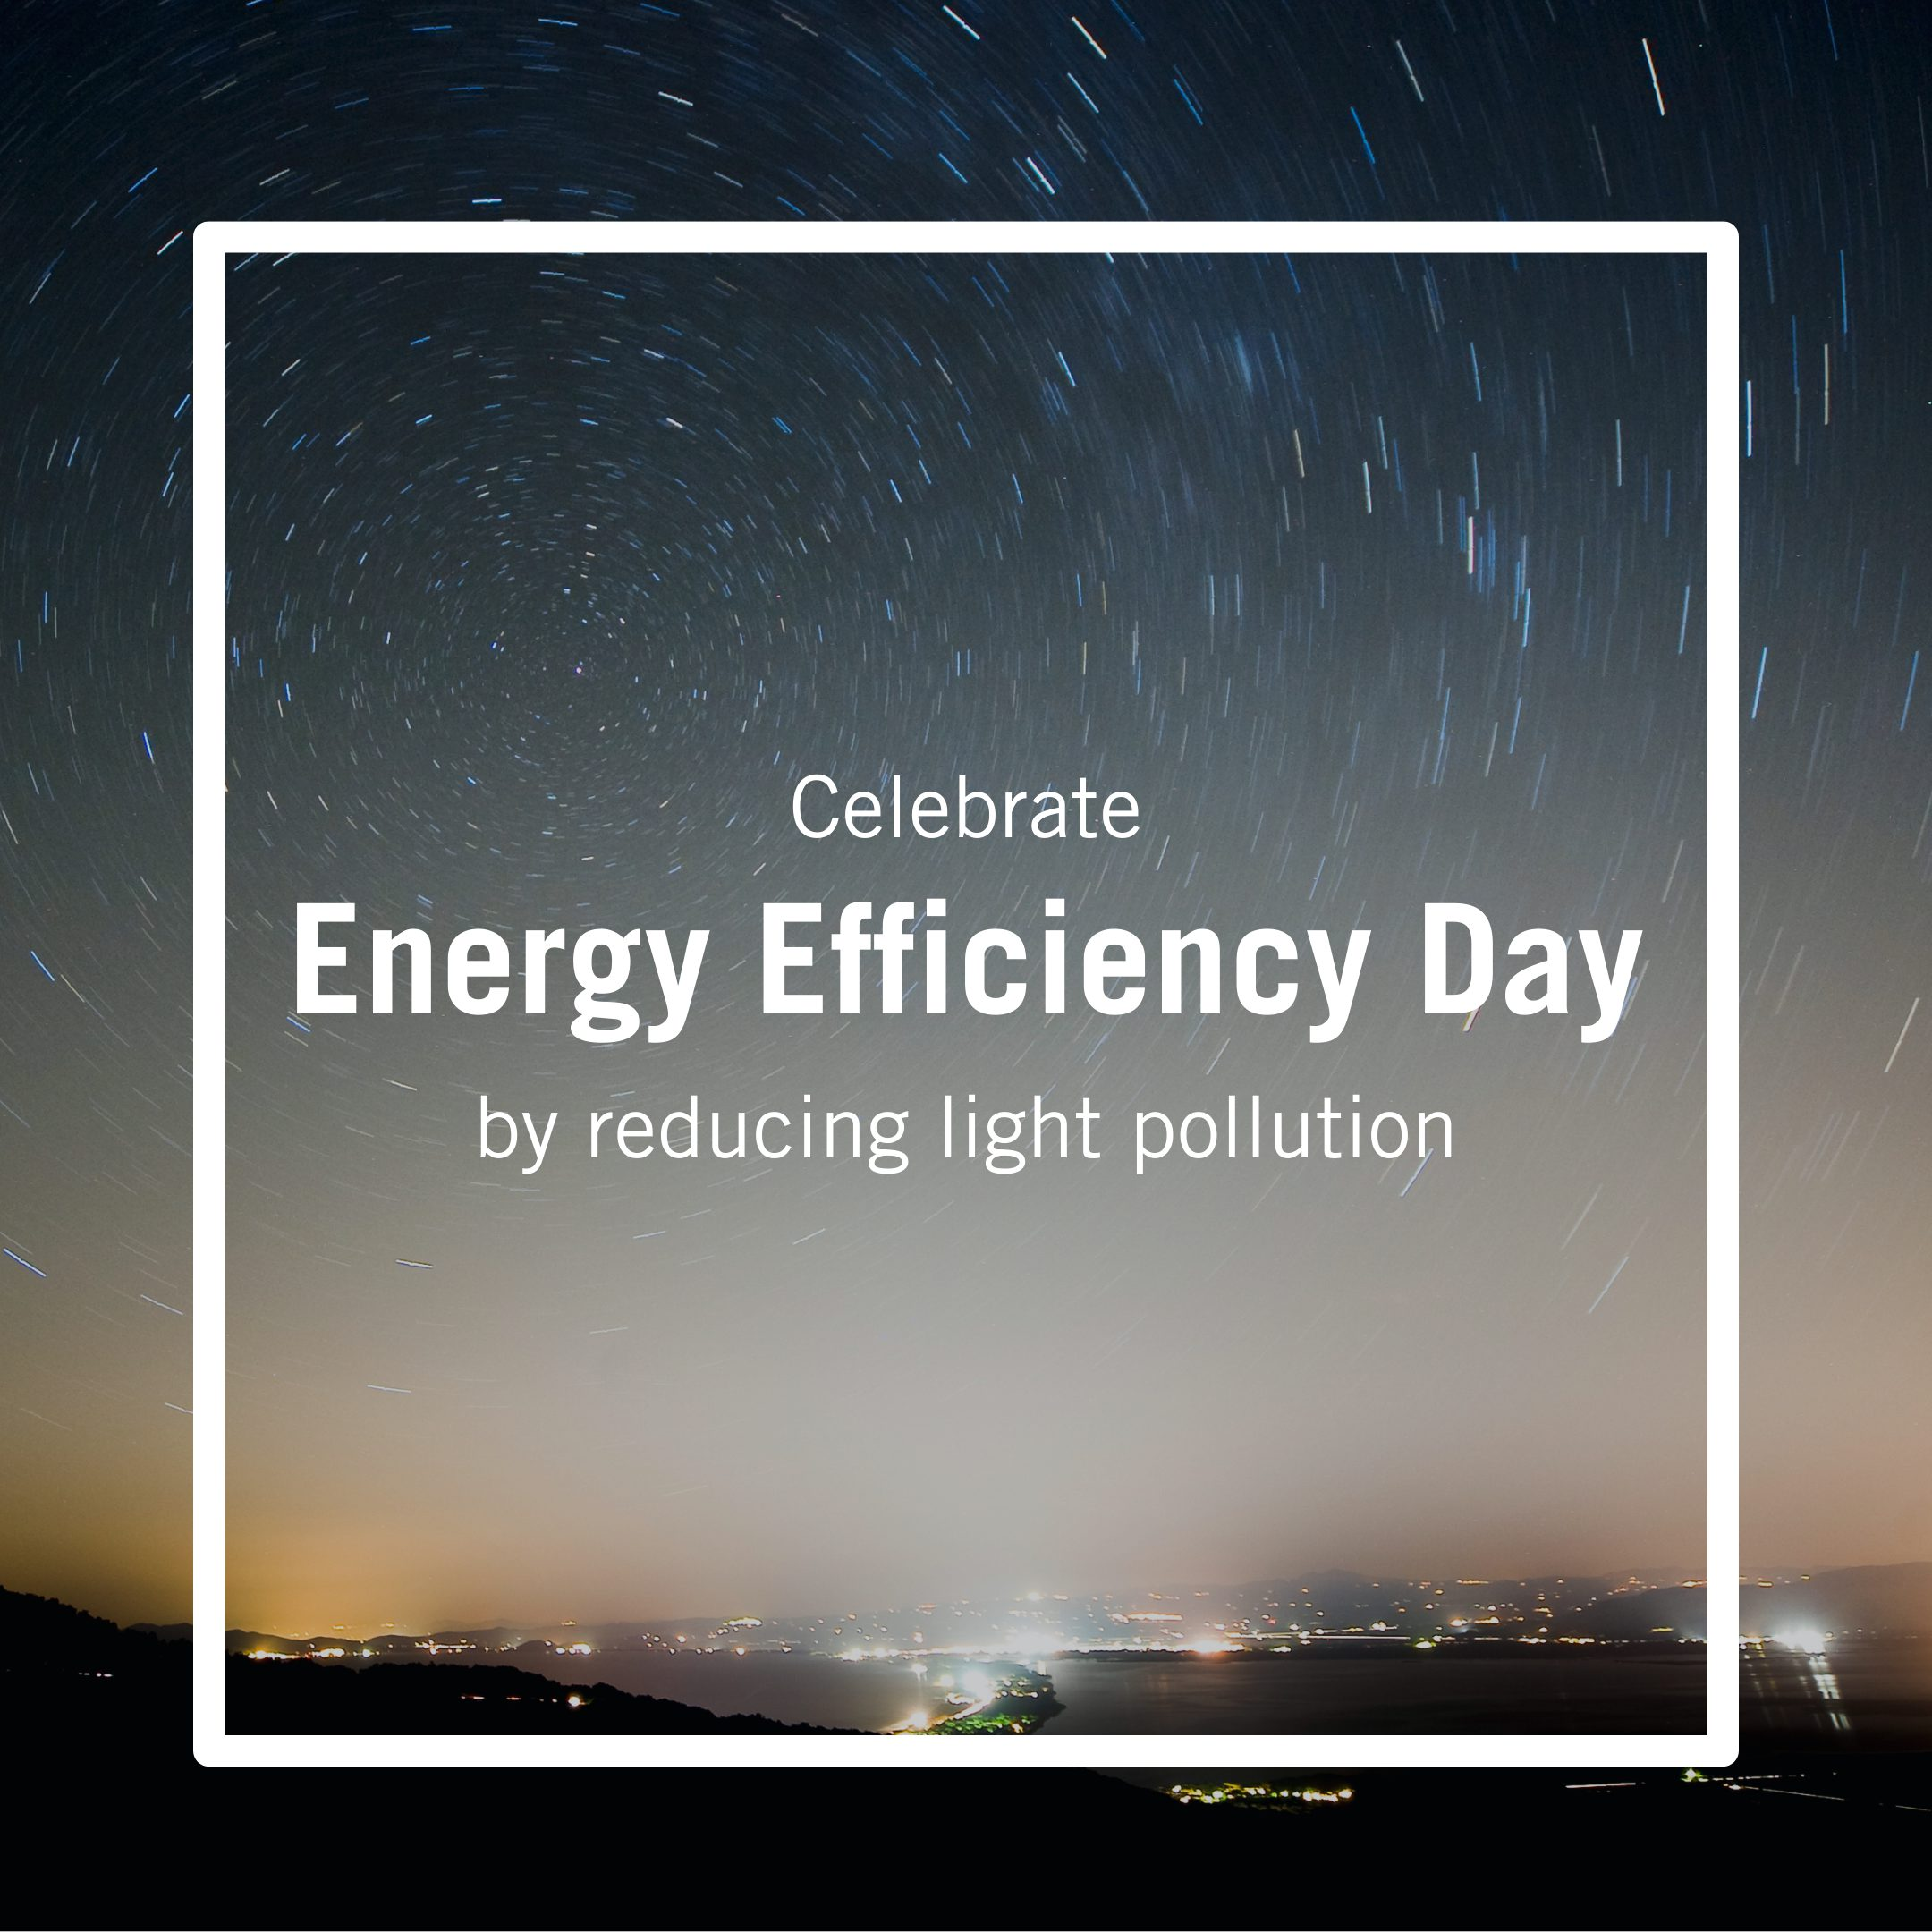 Celebrate Energy Efficiency Day by reducing light pollution.